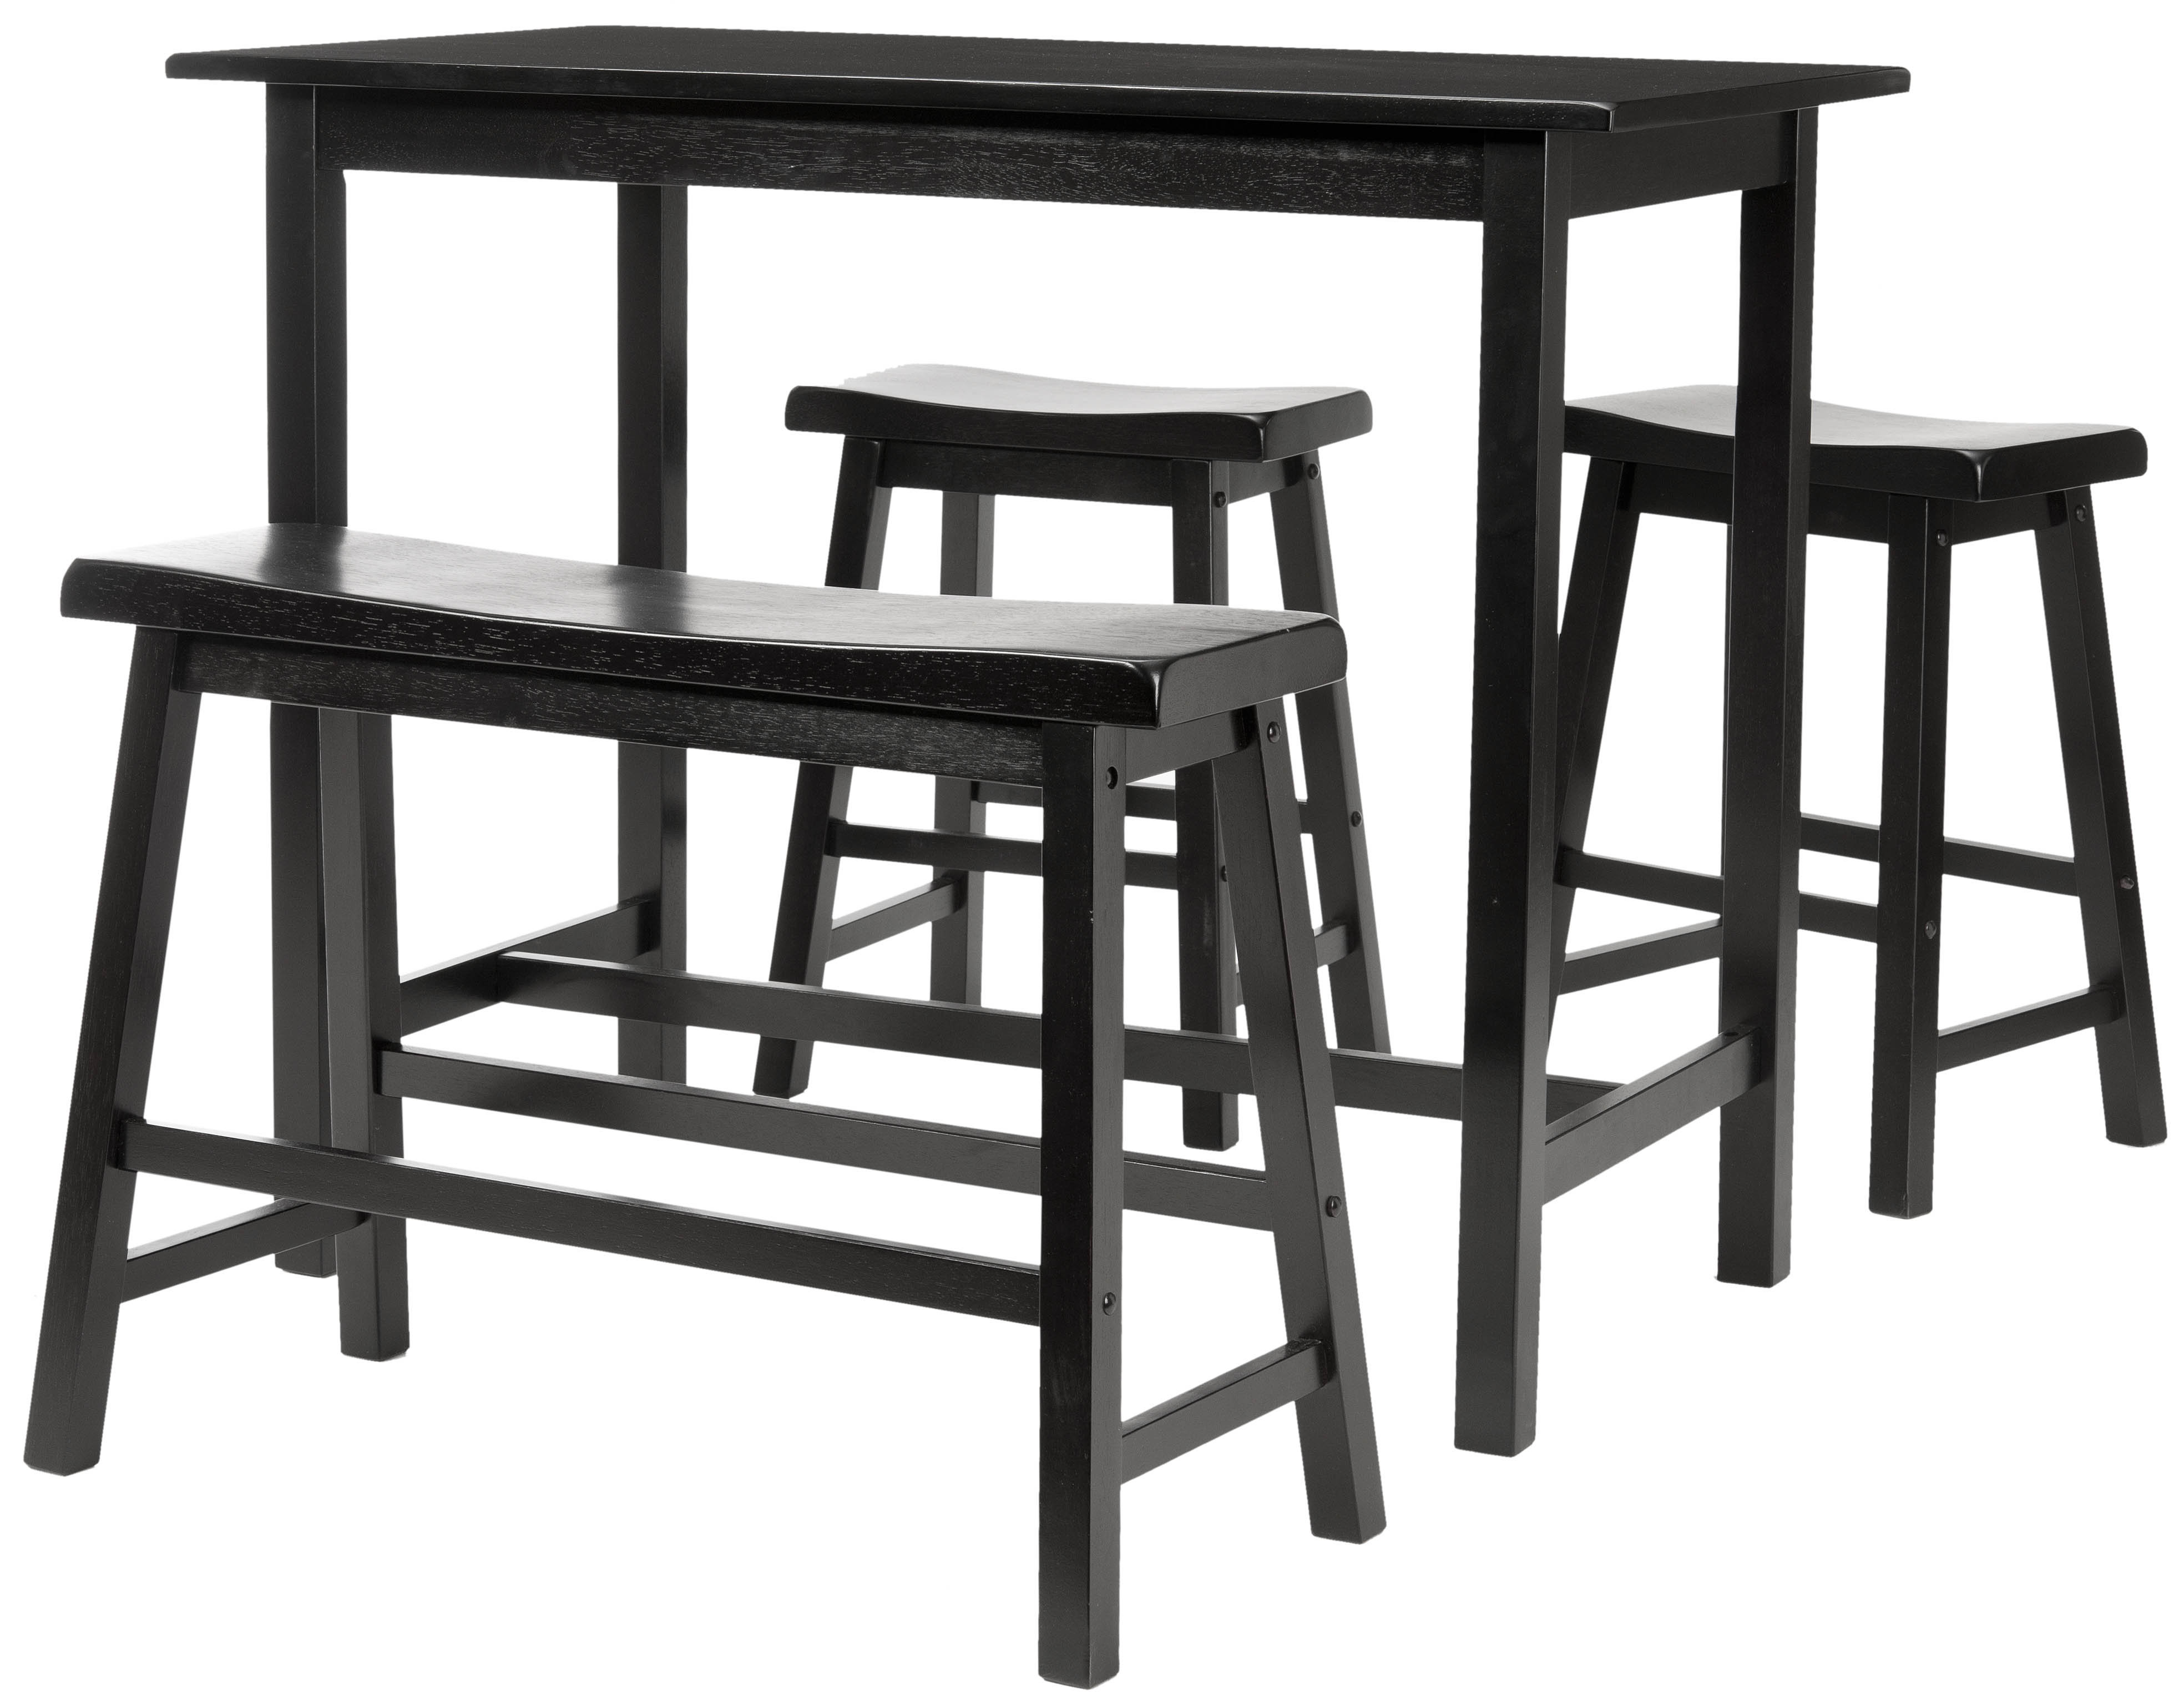 Latest Kerley 4 Piece Dining Sets Regarding Chelsey 4 Piece Dining Set & Reviews (View 12 of 25)